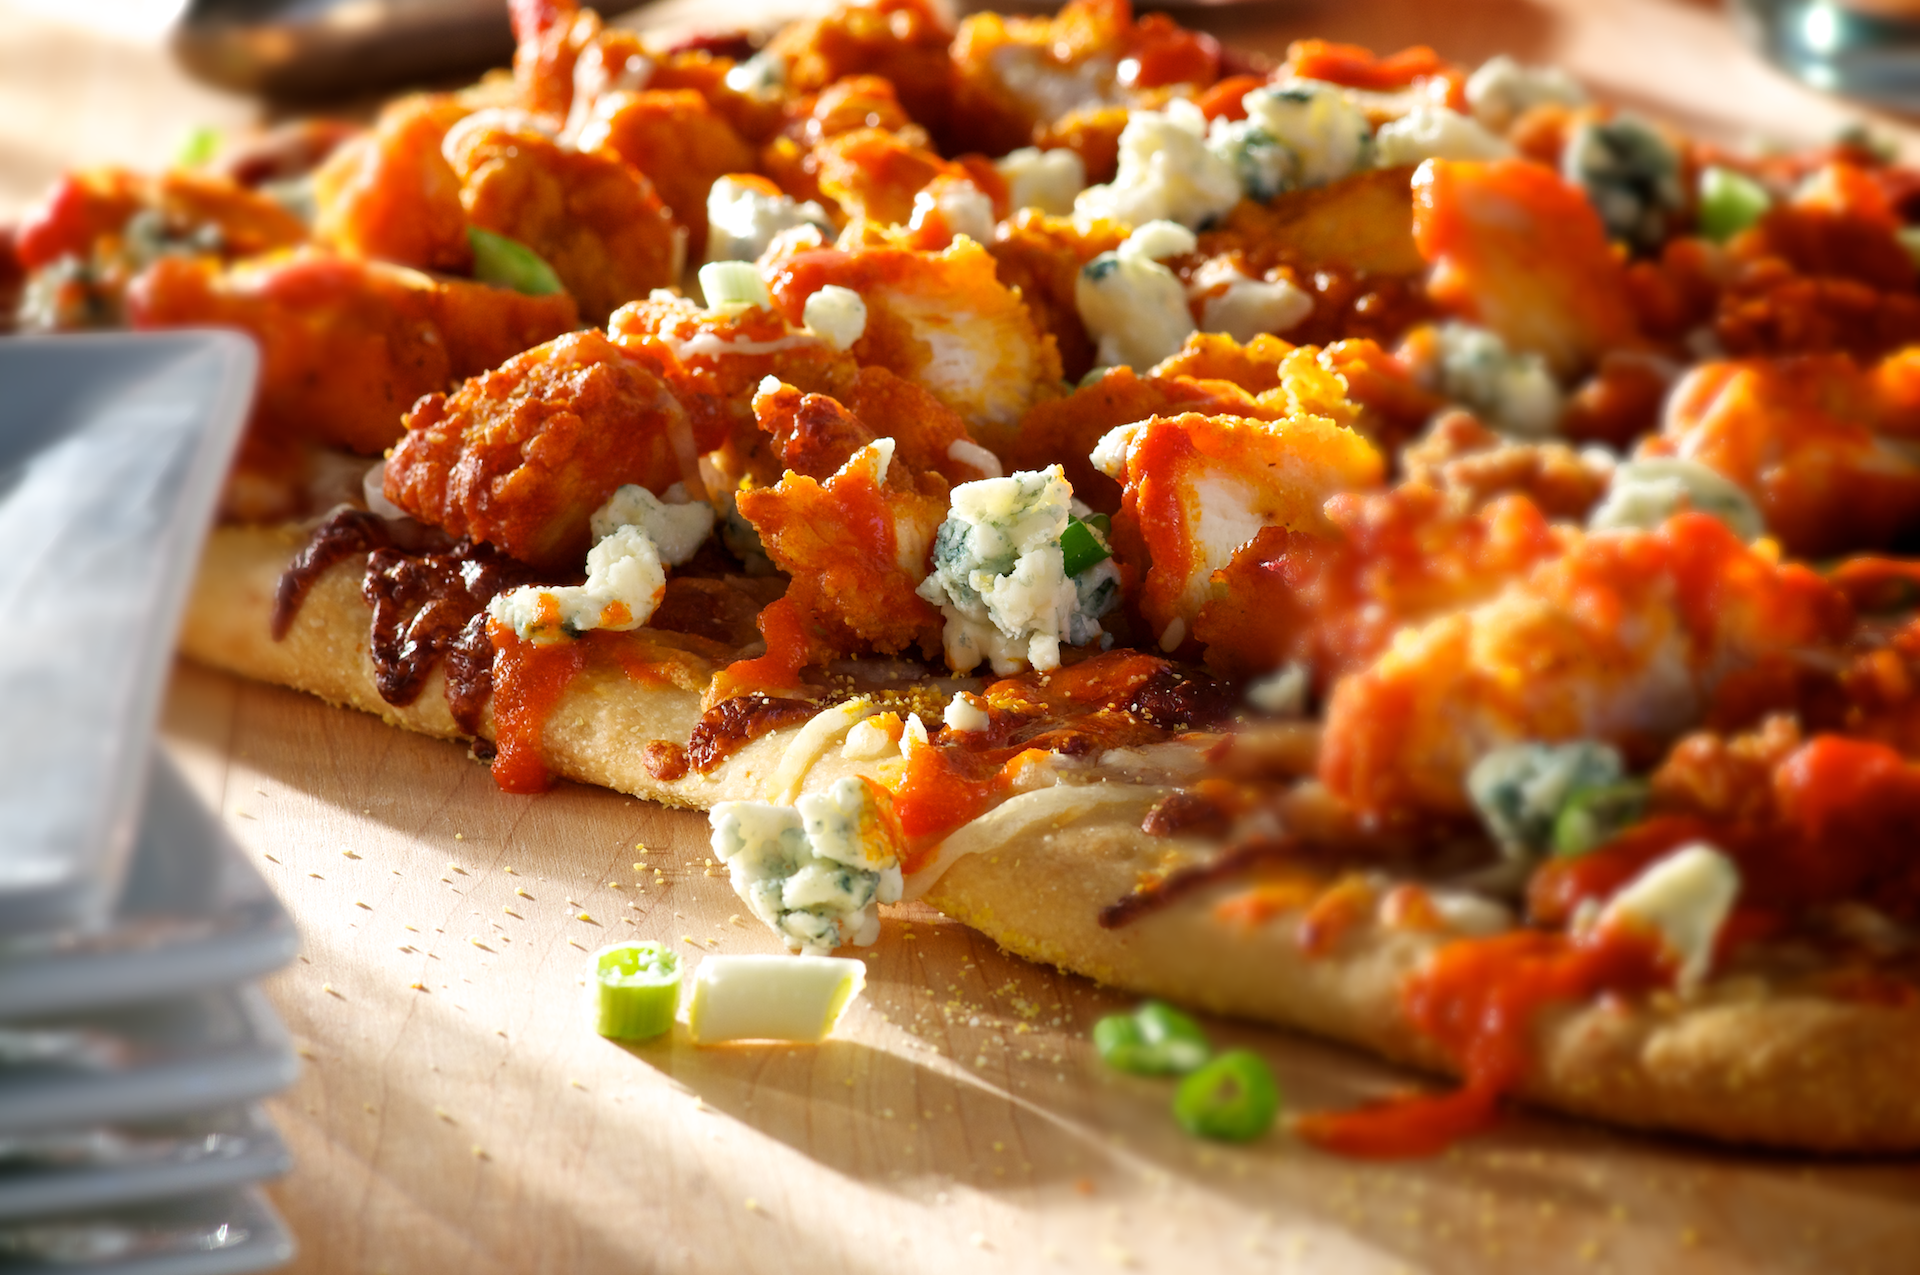 Everything you love about crispy chicken tossed in a buttery, hot-and-spicy Buffalo sauce piled on a golden bubbly cheese pizza garnished with crumbled bleu cheese, fresh-chopped green onions and even more zesty Buffalo sauce.